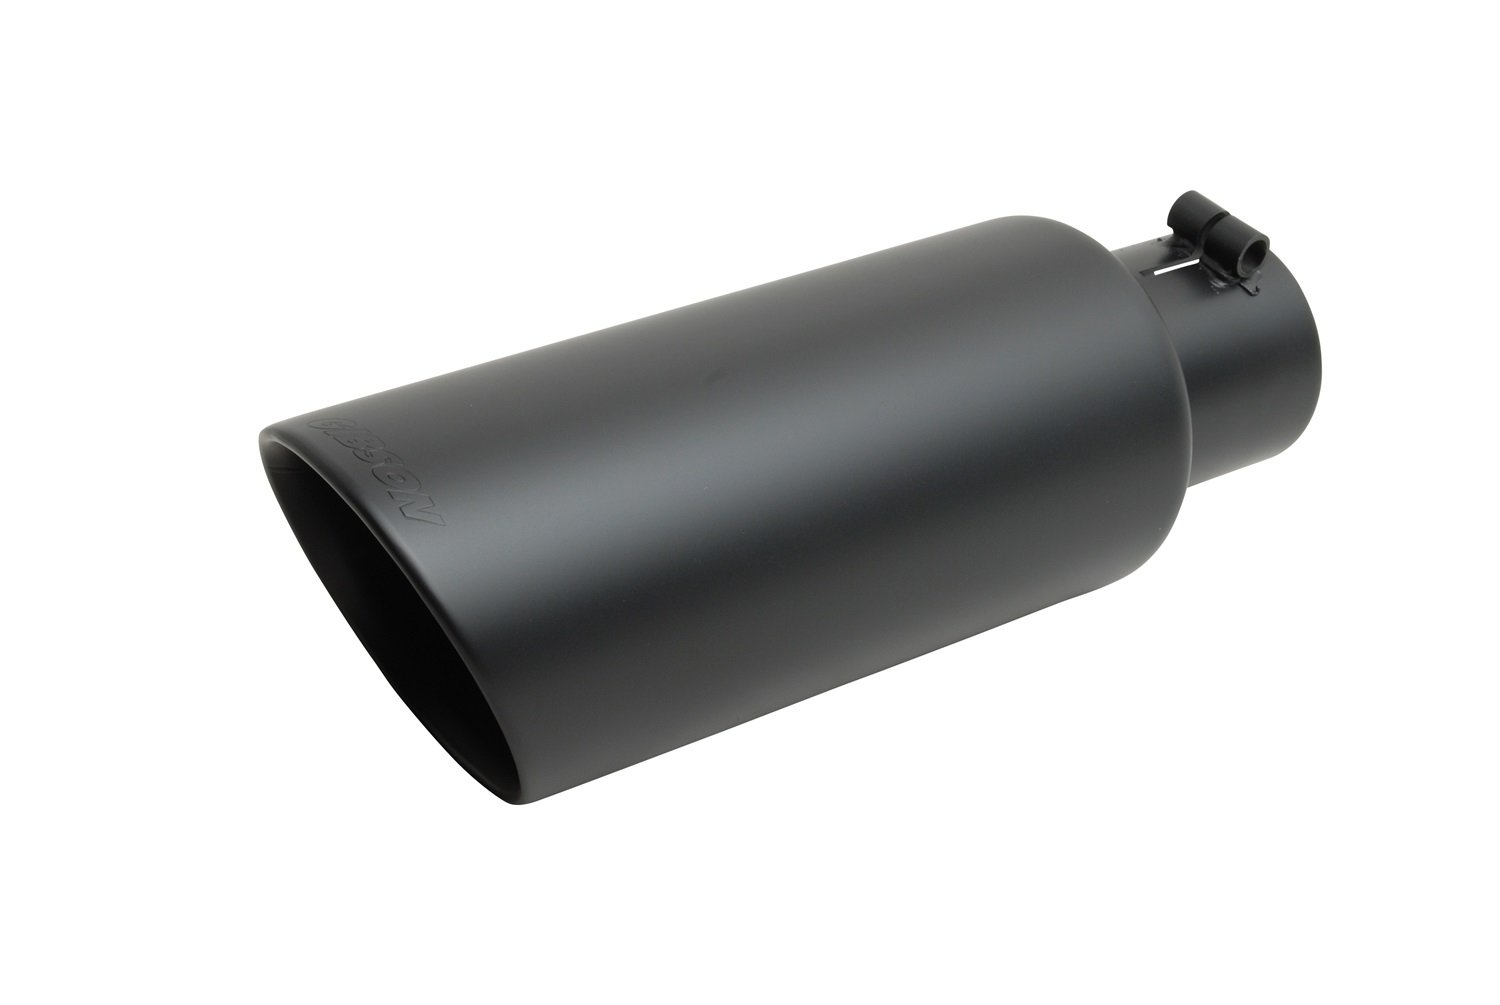 Gibson 500637-B Elite Series Exhaust Tip Gibson Performance Exhaust